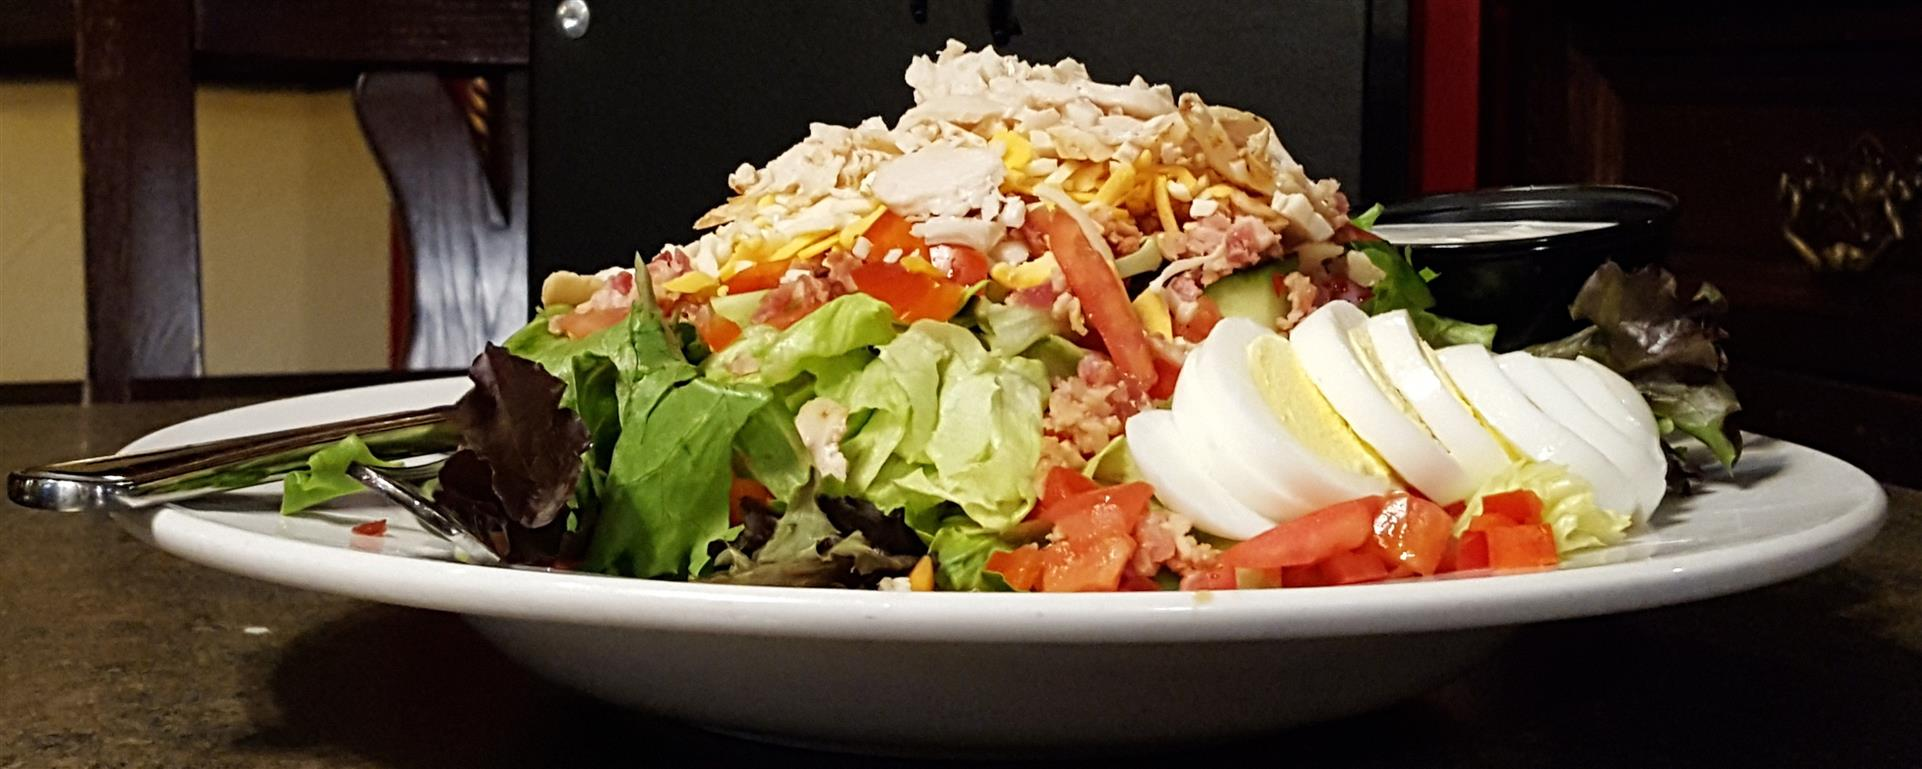 a salad with lettuce, tomato, boiled eggs and cheese